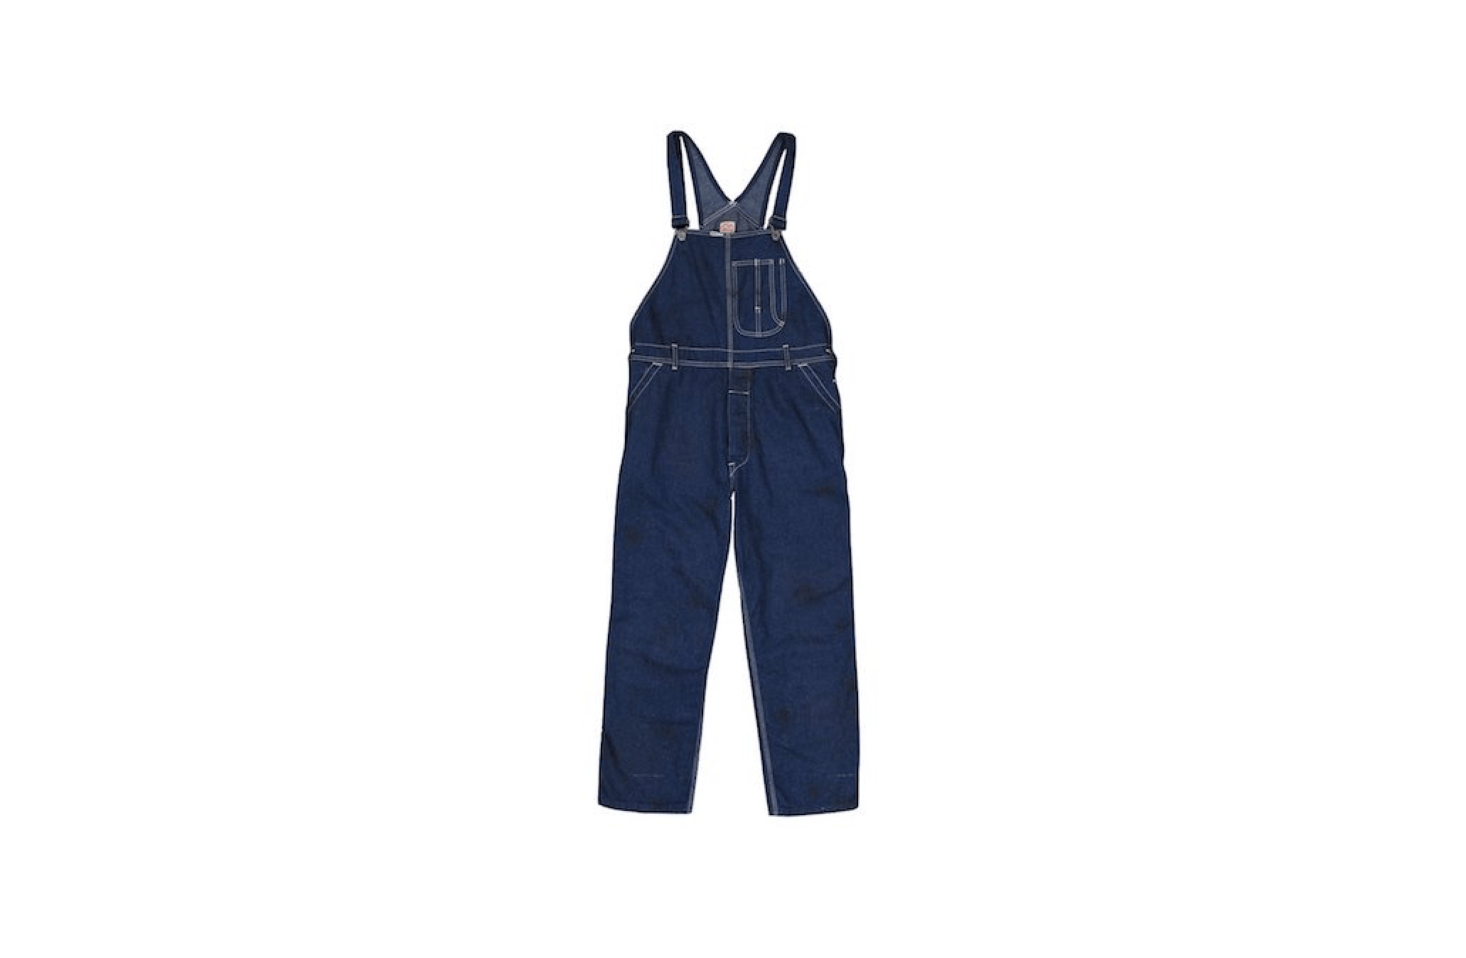 Made in Japan, a pair of Chimala Old Nep Denim Overalls is marked down to $379 (from $54